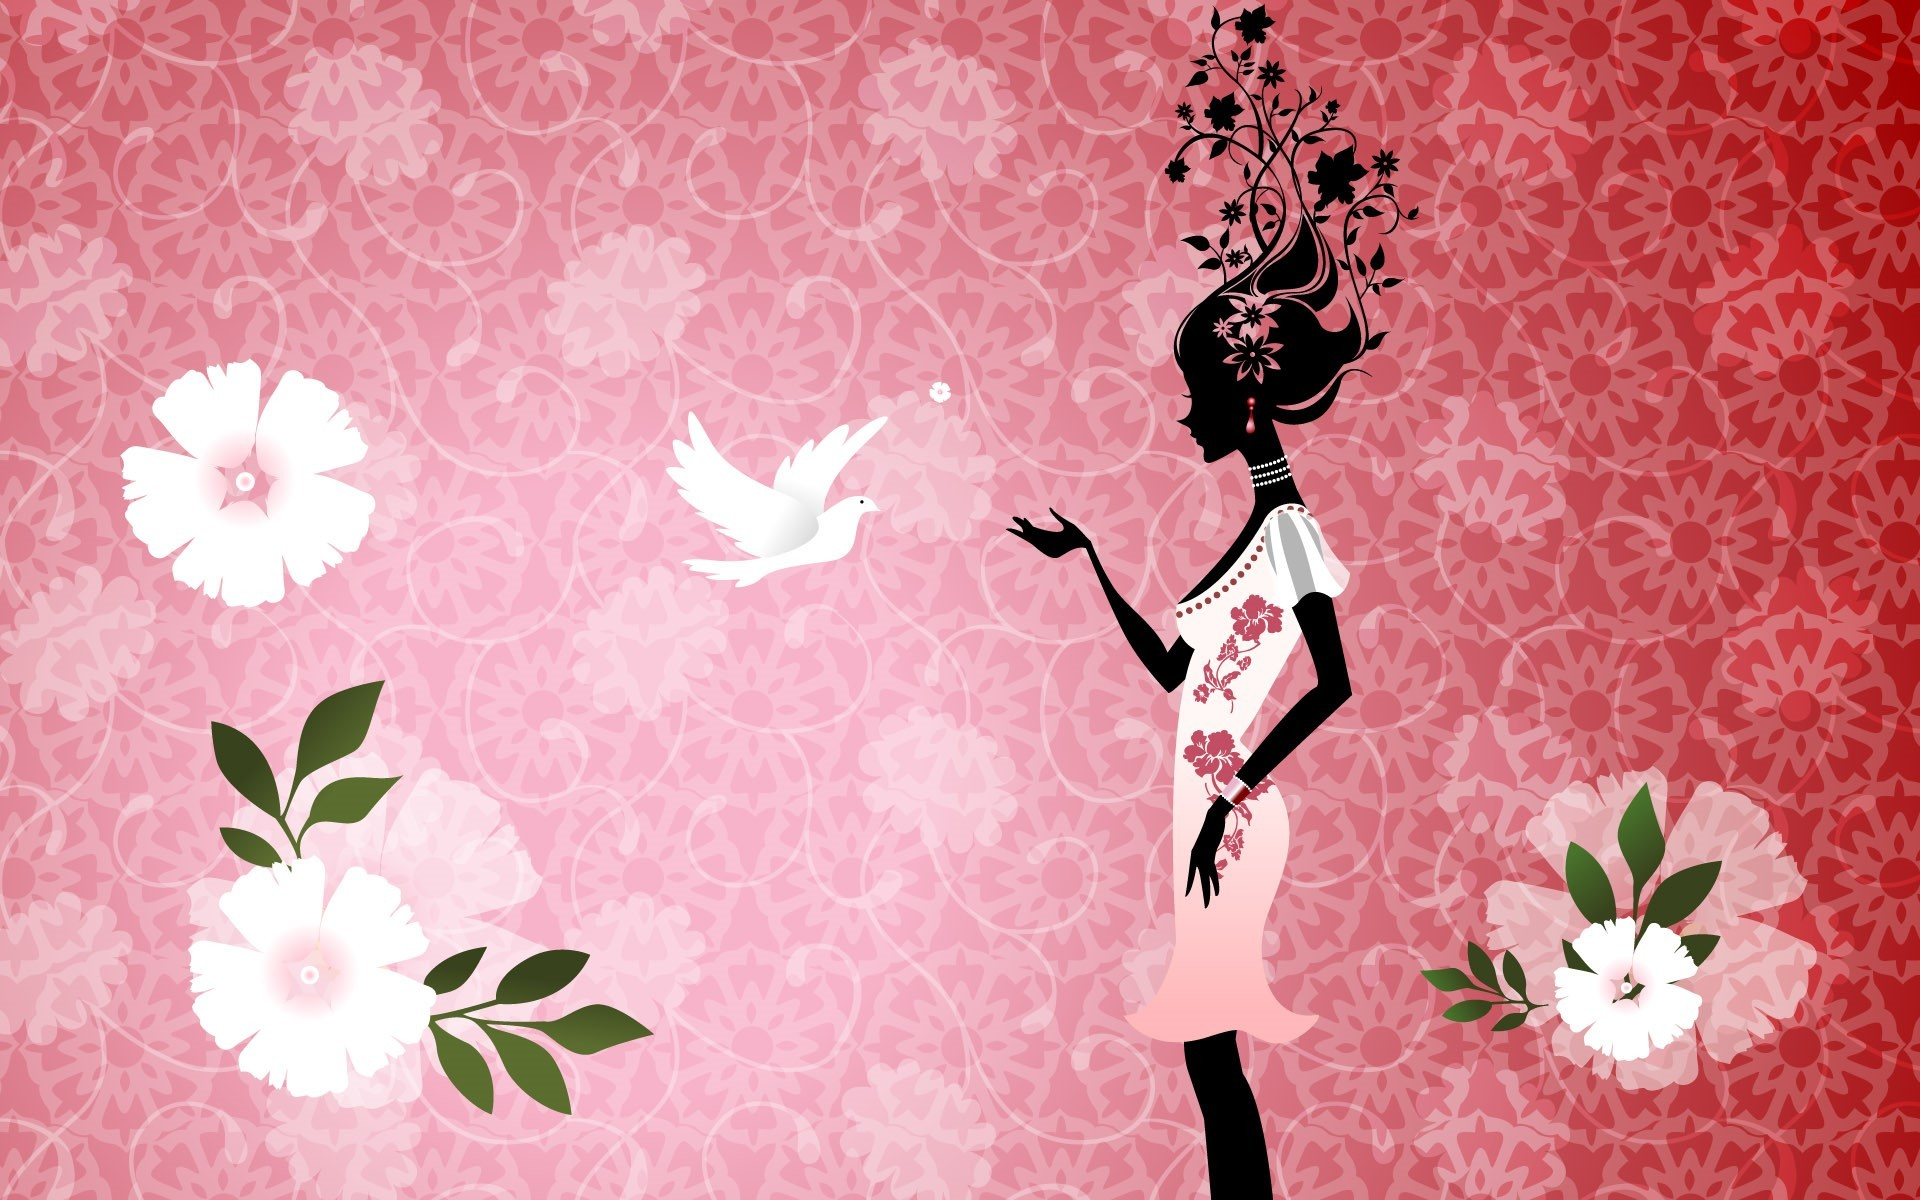 Pics In High Quality – Girly by Blaise Aphale. 0.424 MB. Girly  Wallpaper